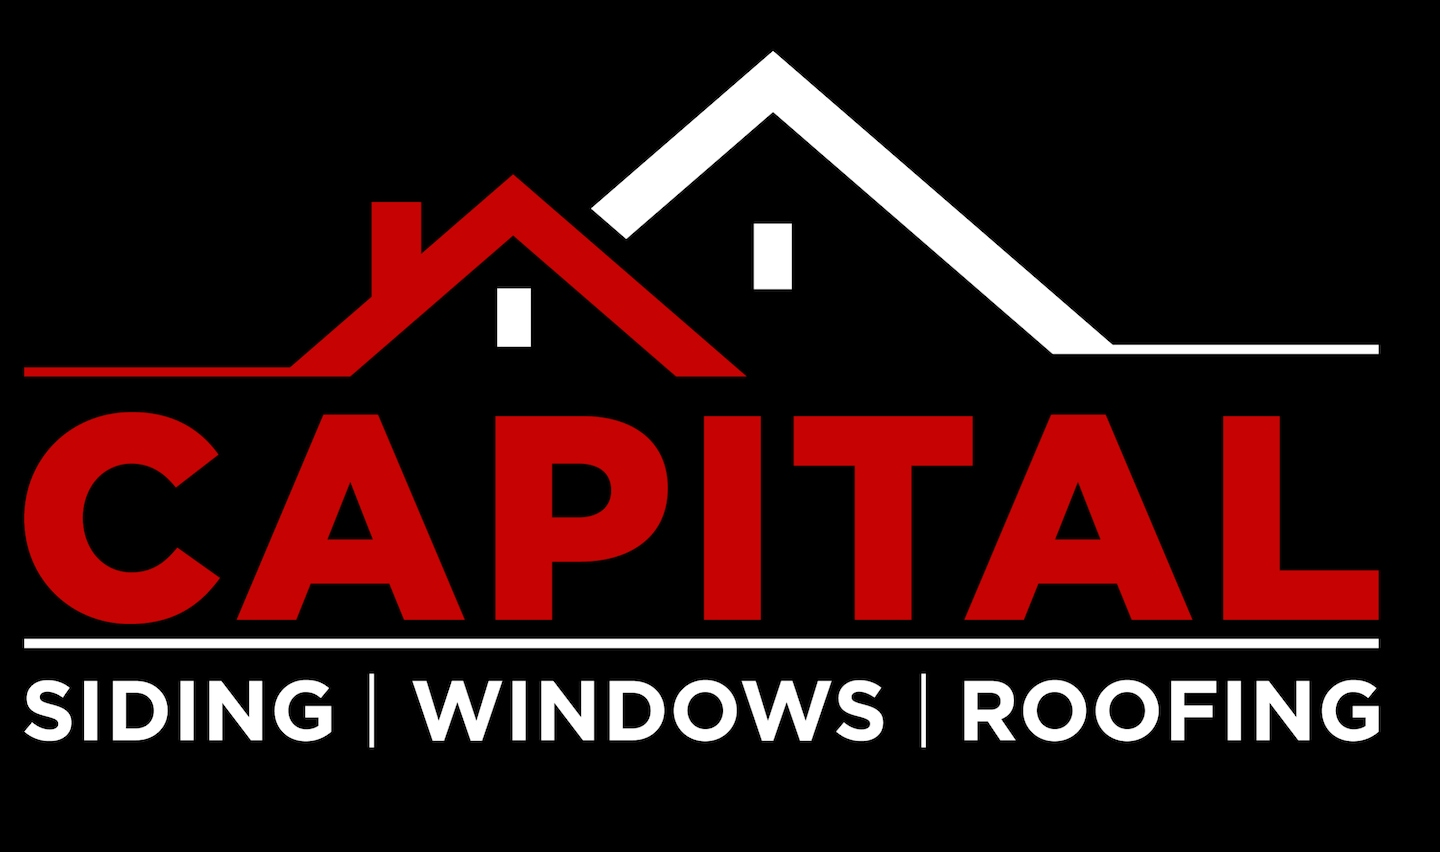 Capital Siding Windows & Roofing logo